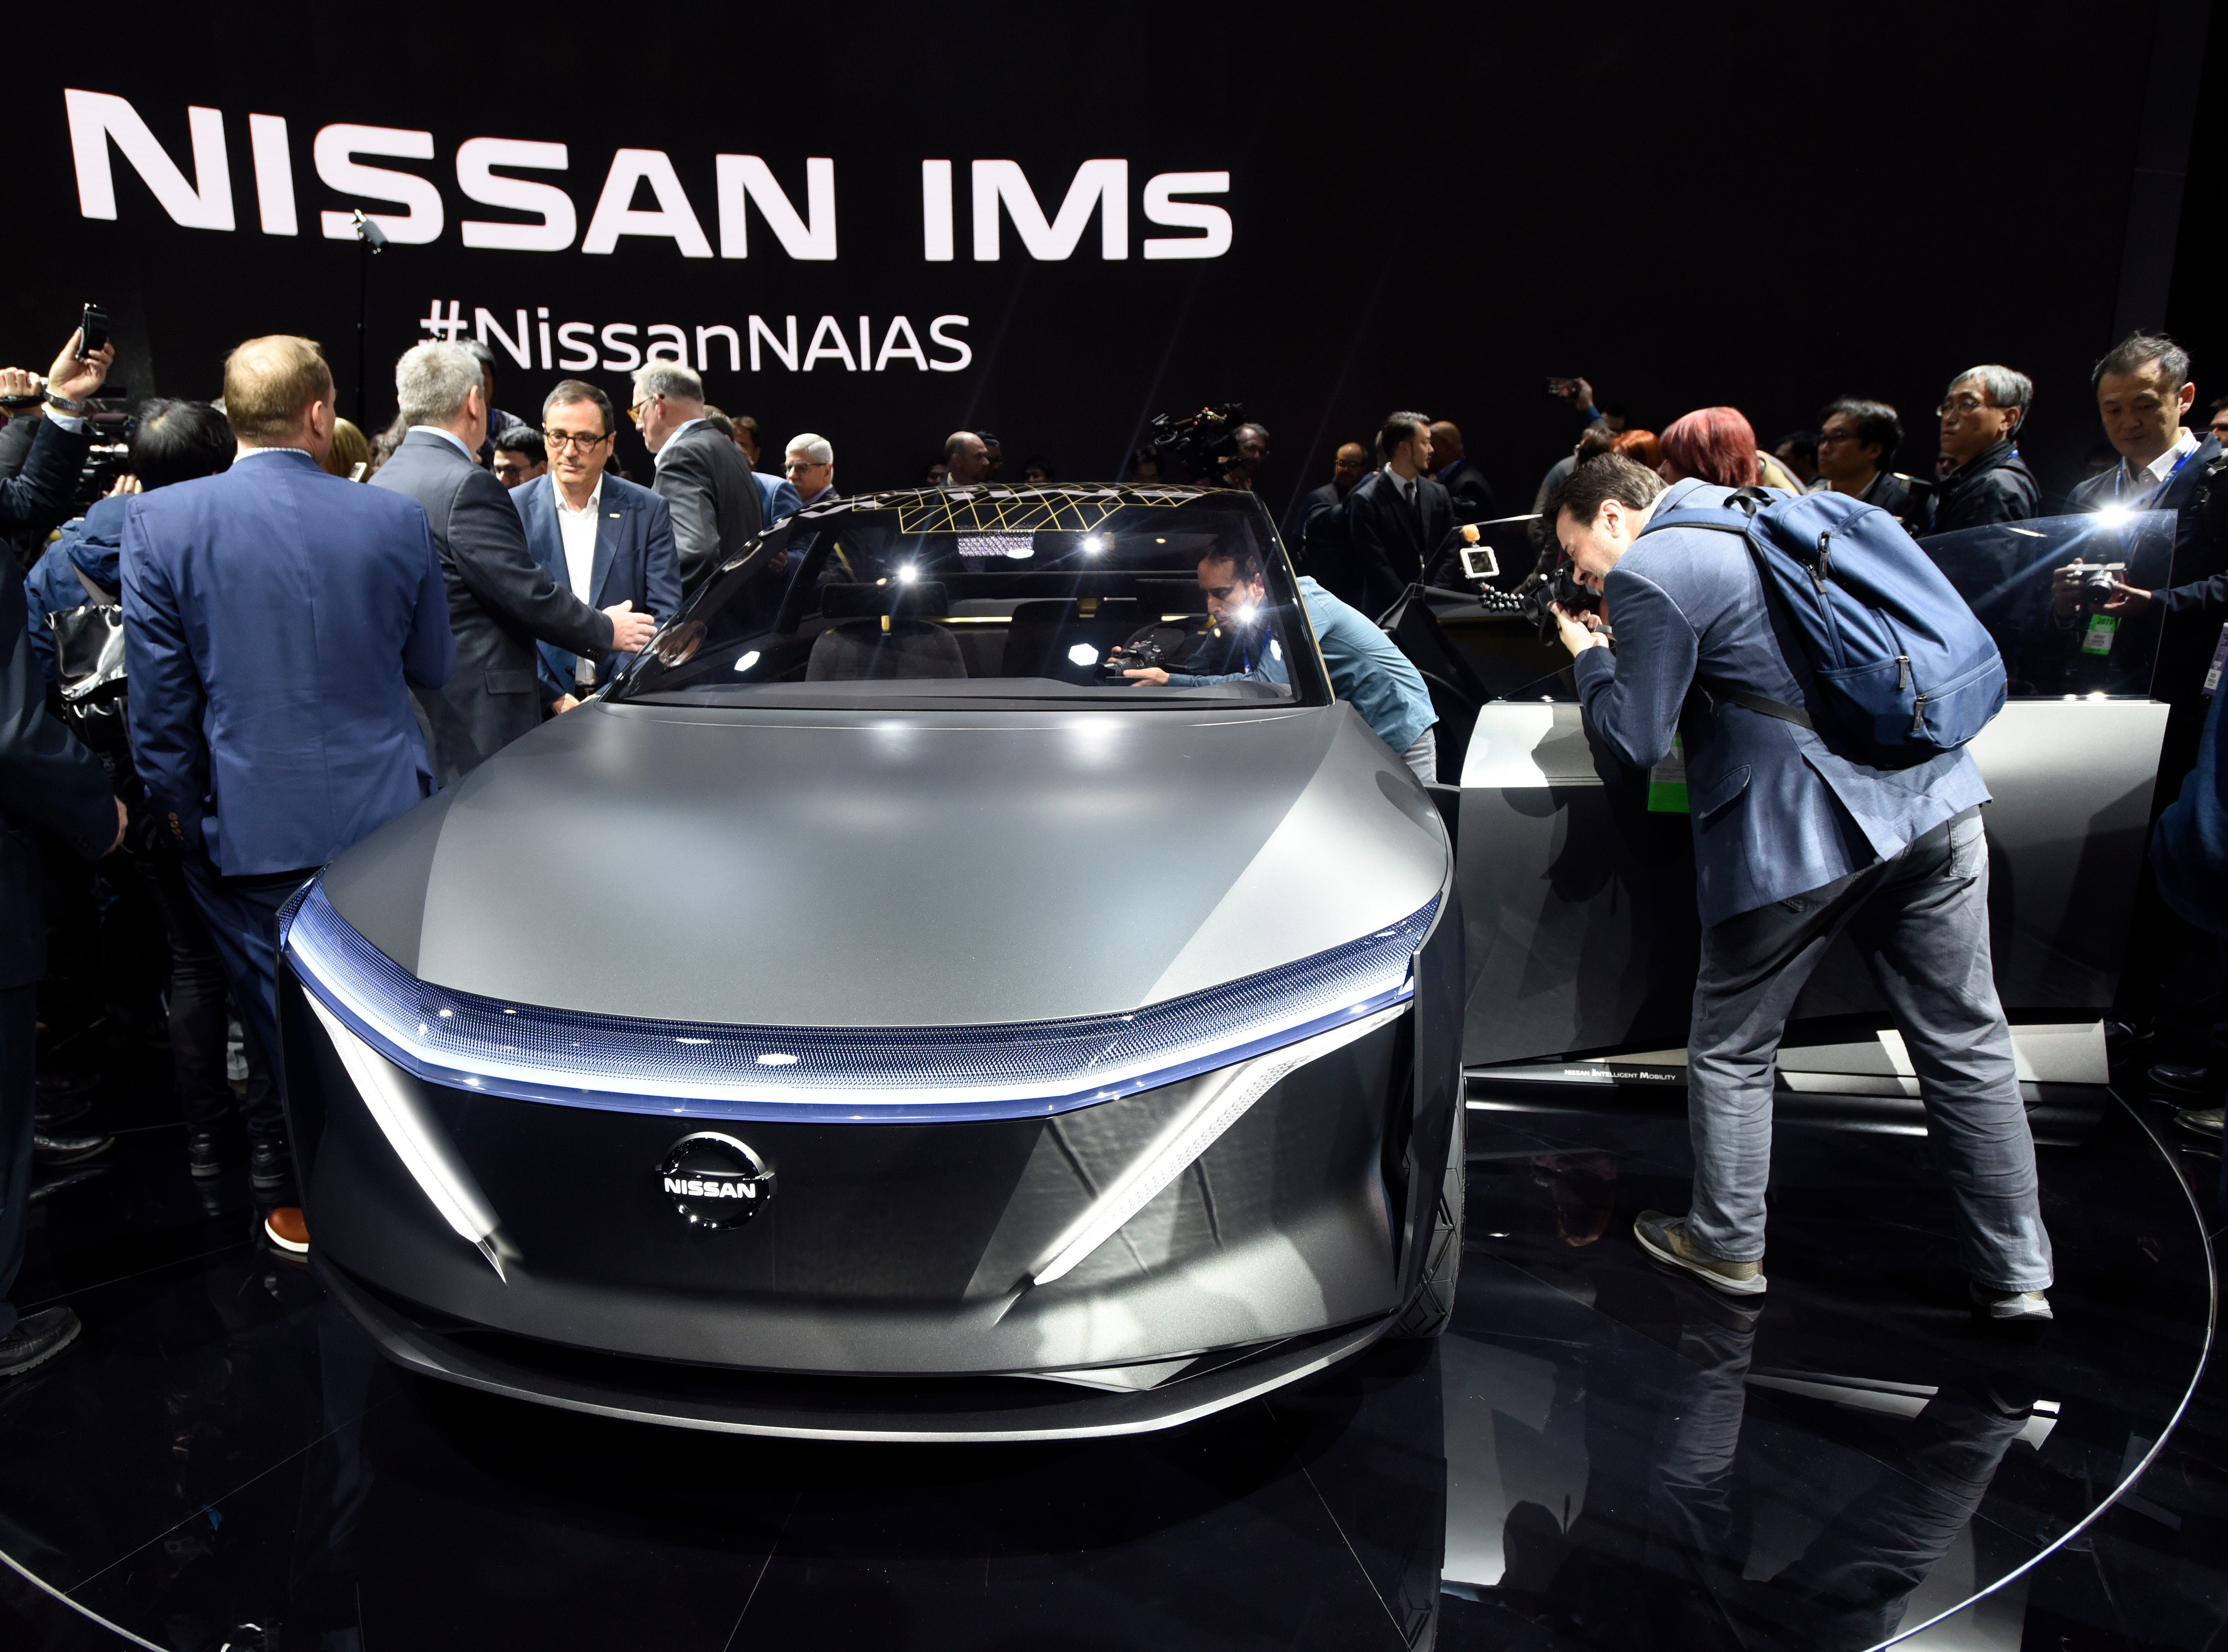 Media members take photos of the just- unveiled Nissan IMs.Juarez/Special to Detroit News)